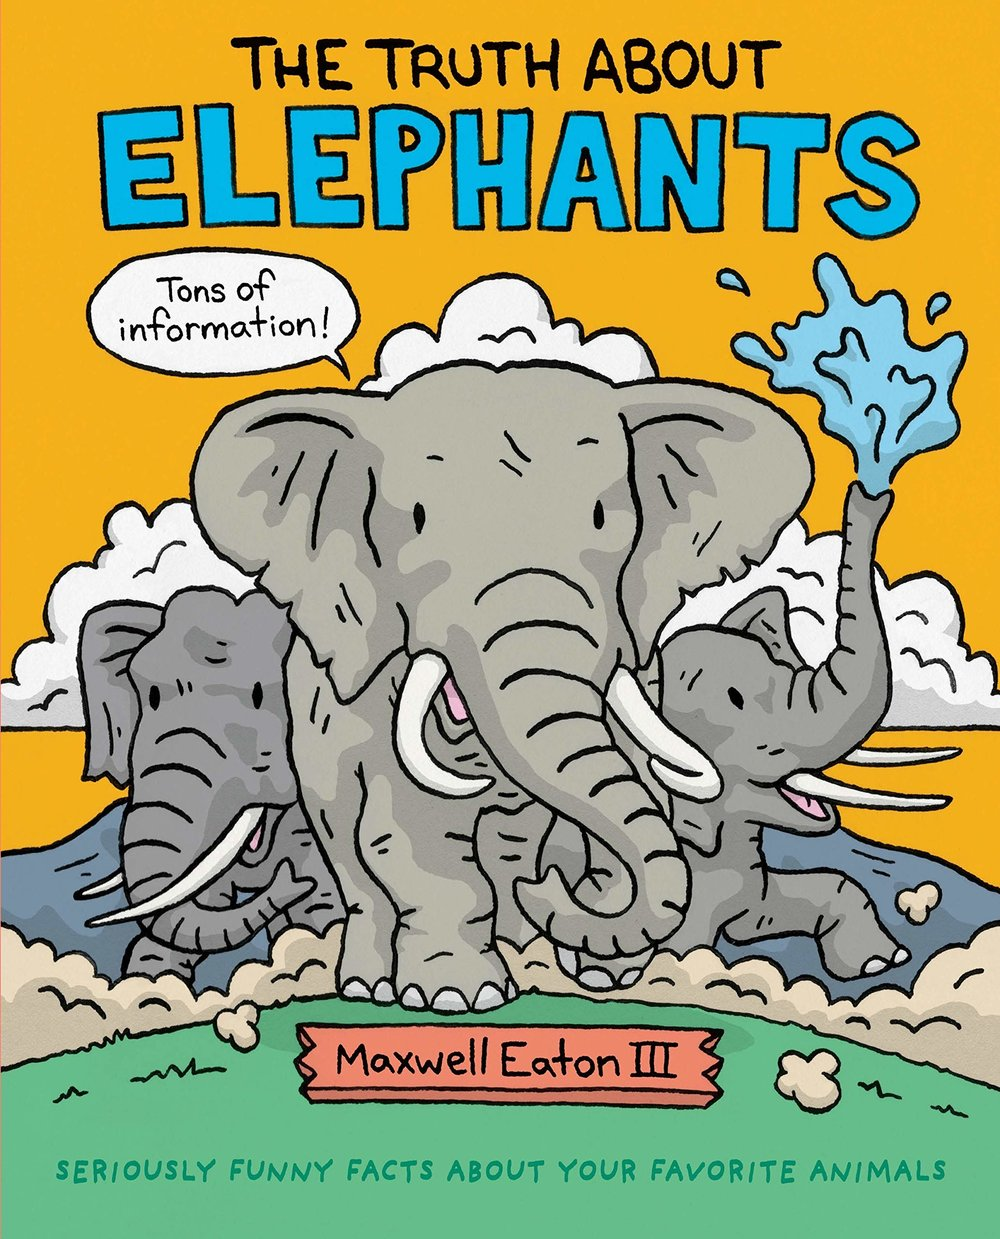 The Truth About Elephants.jpg